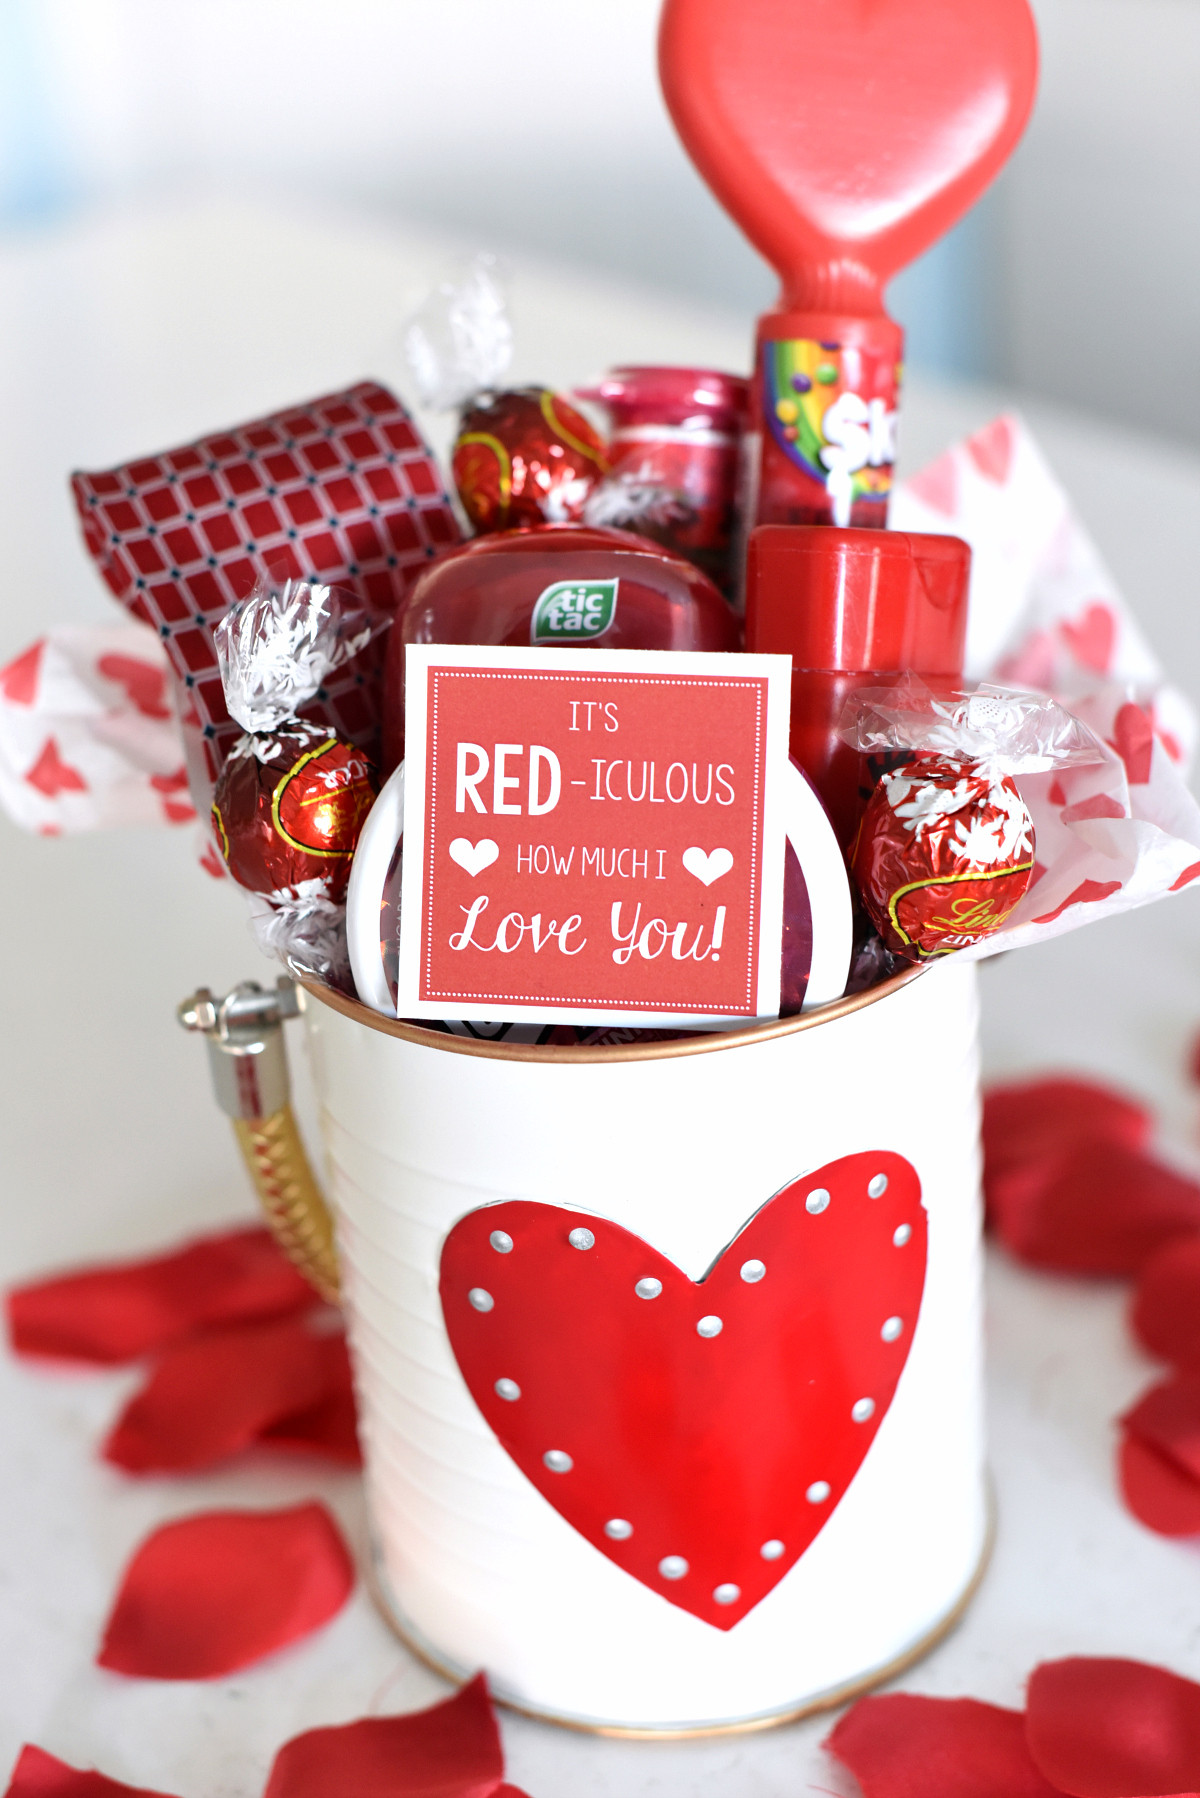 Valentines Day Gift Ideas For Husband  Cute Valentine s Day Gift Idea RED iculous Basket